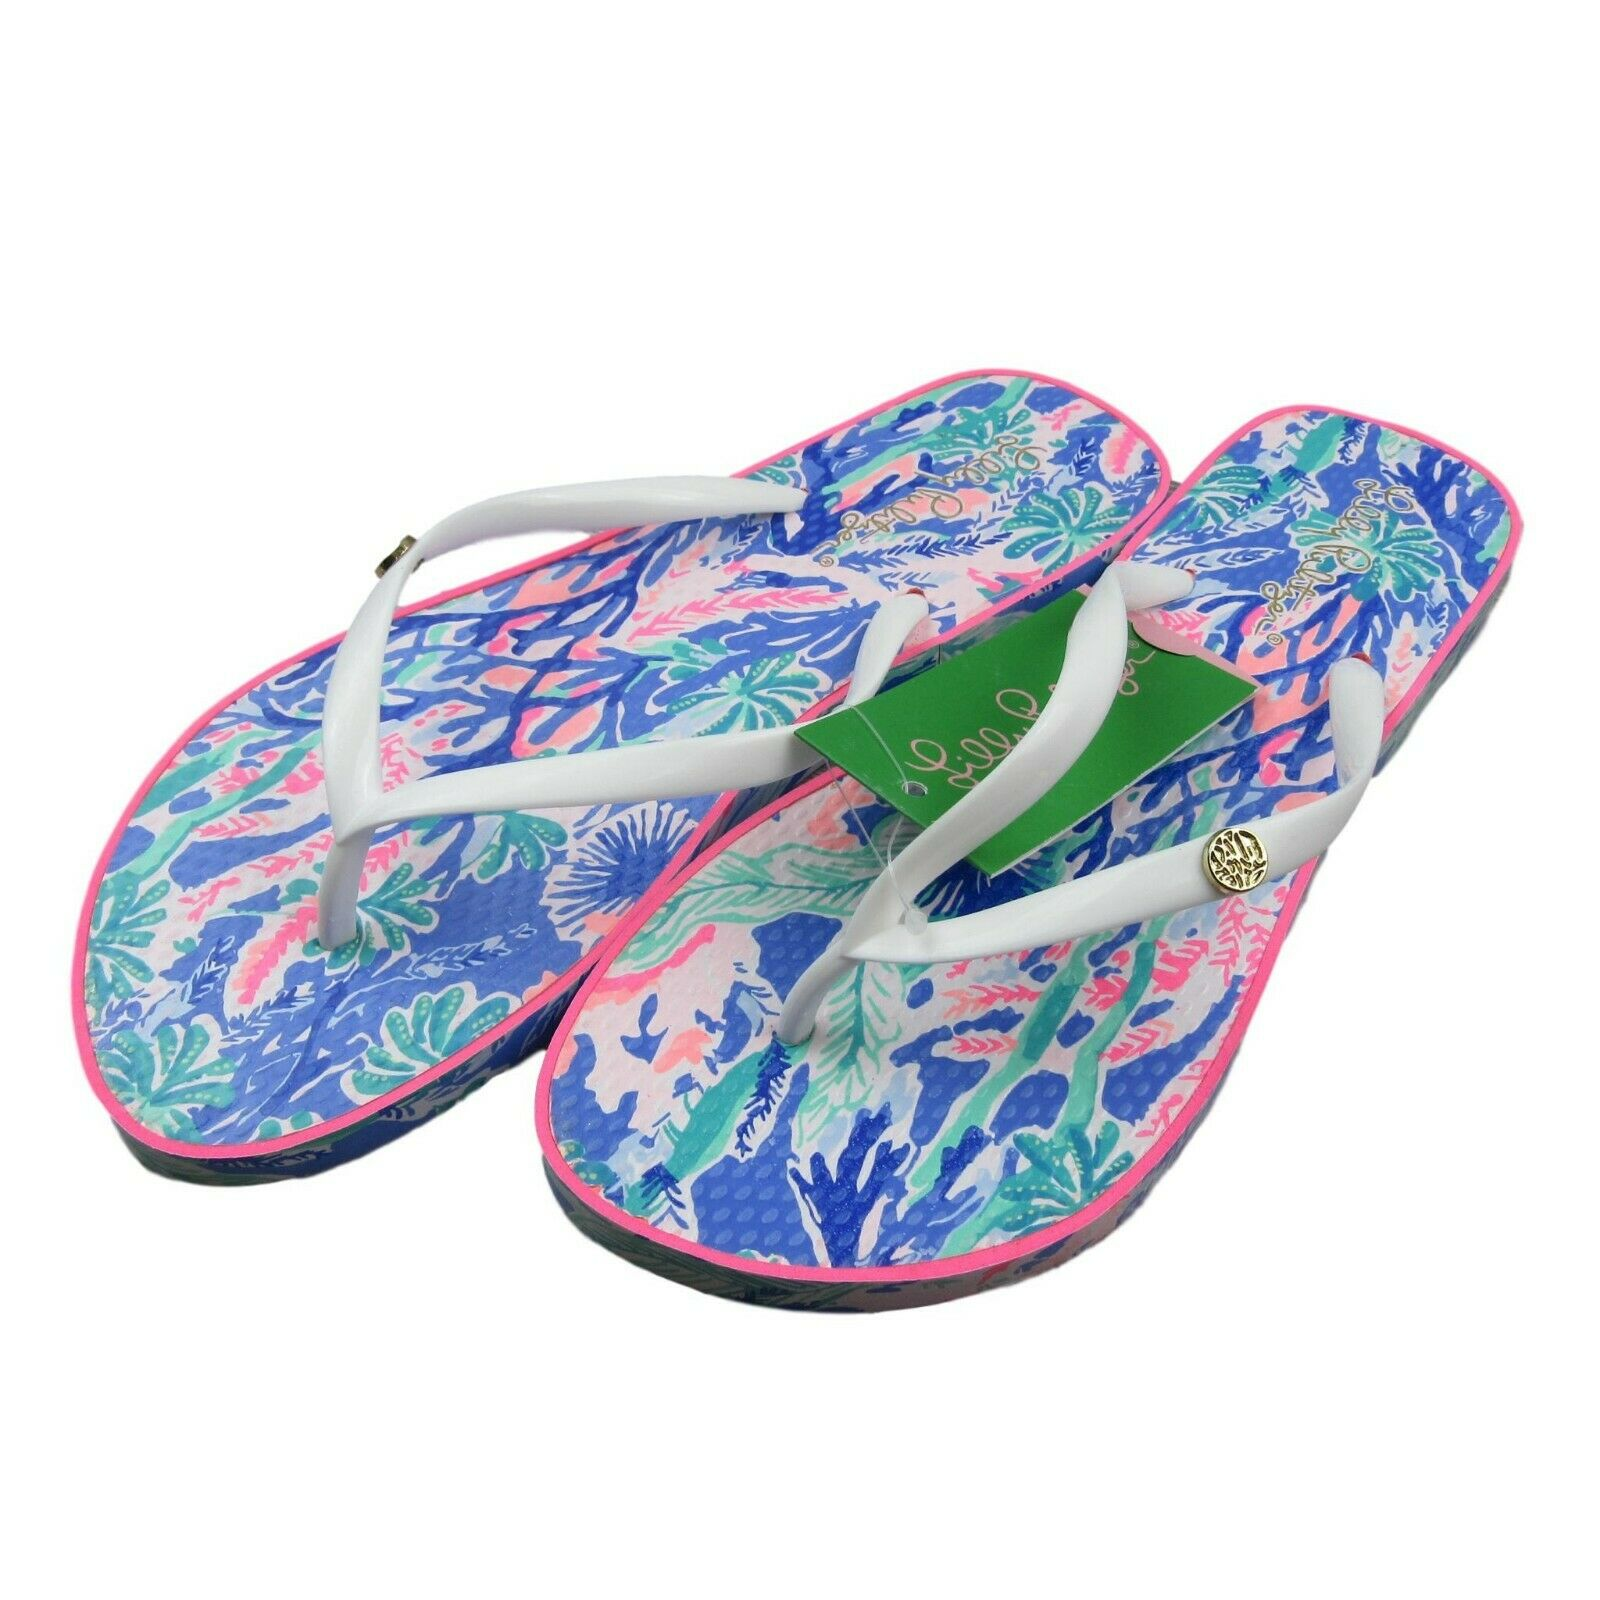 d3b66117bb7f Lilly Pulitzer Pool Flip Flops Multi Color Jet Stream Size 5 6 ...